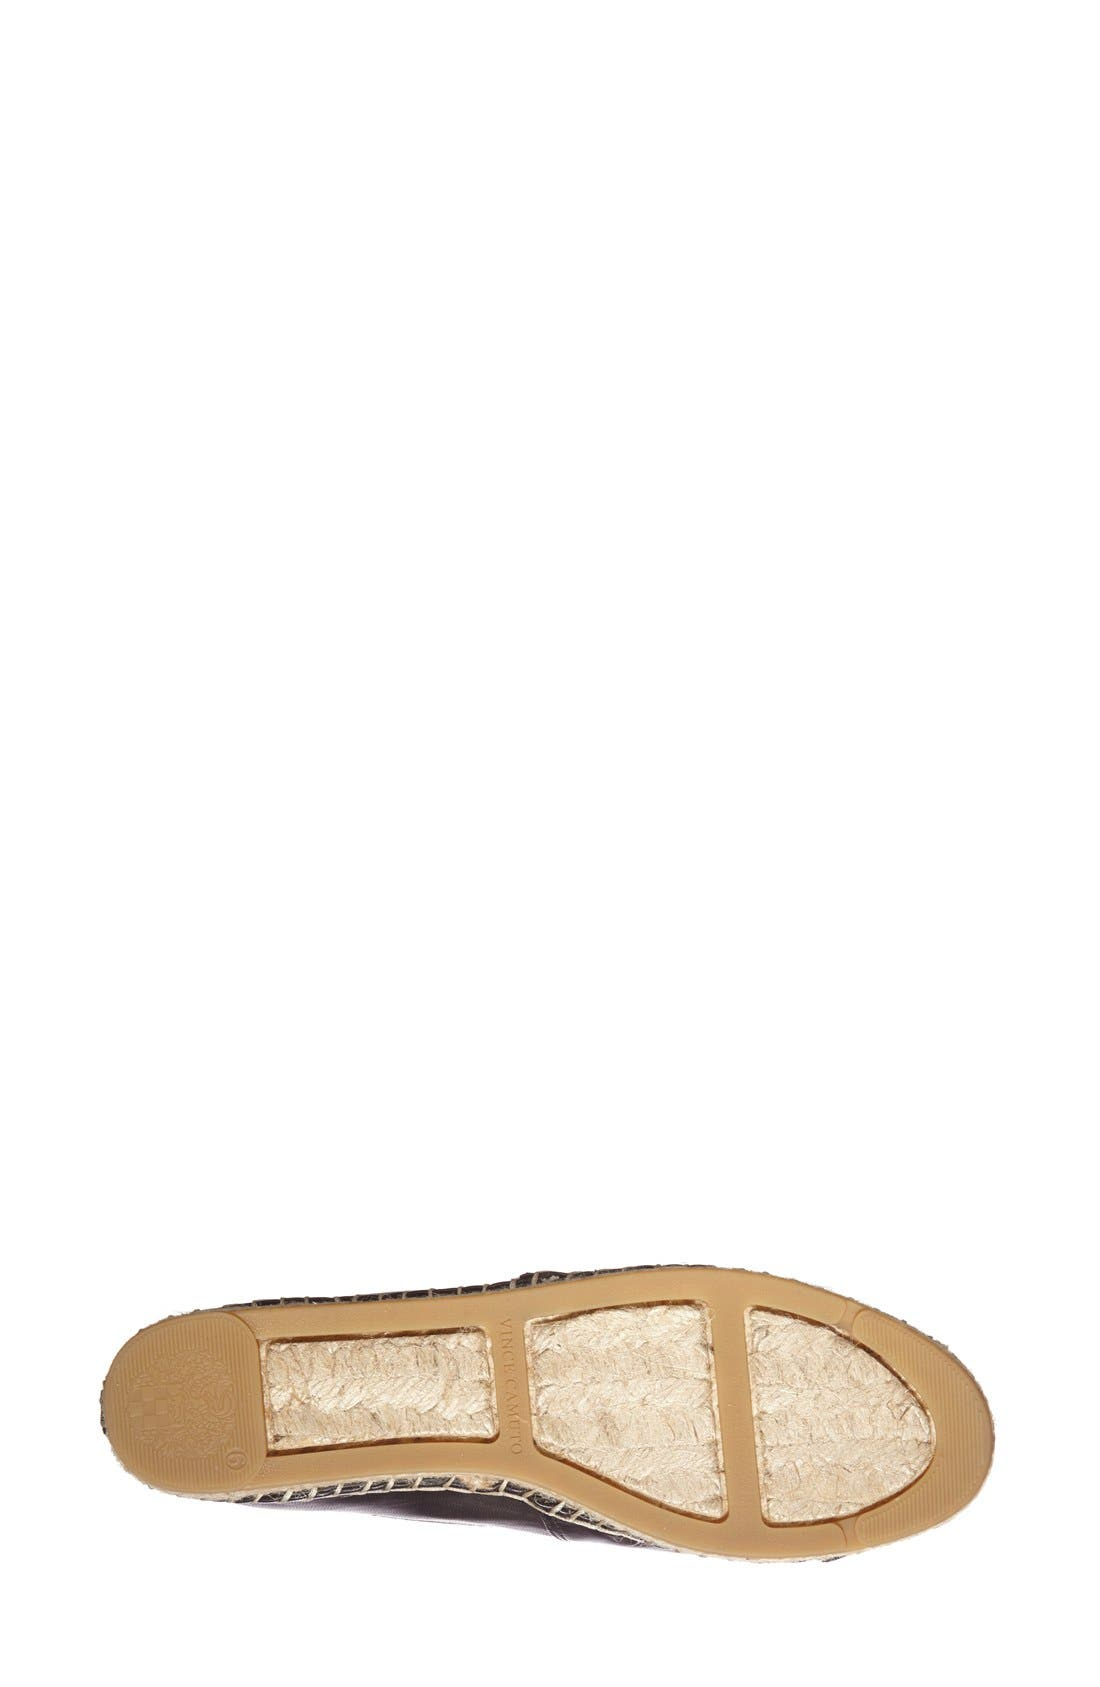 Alternate Image 4  - Vince Camuto 'Dally' Leather Espadrille Flat (Women)